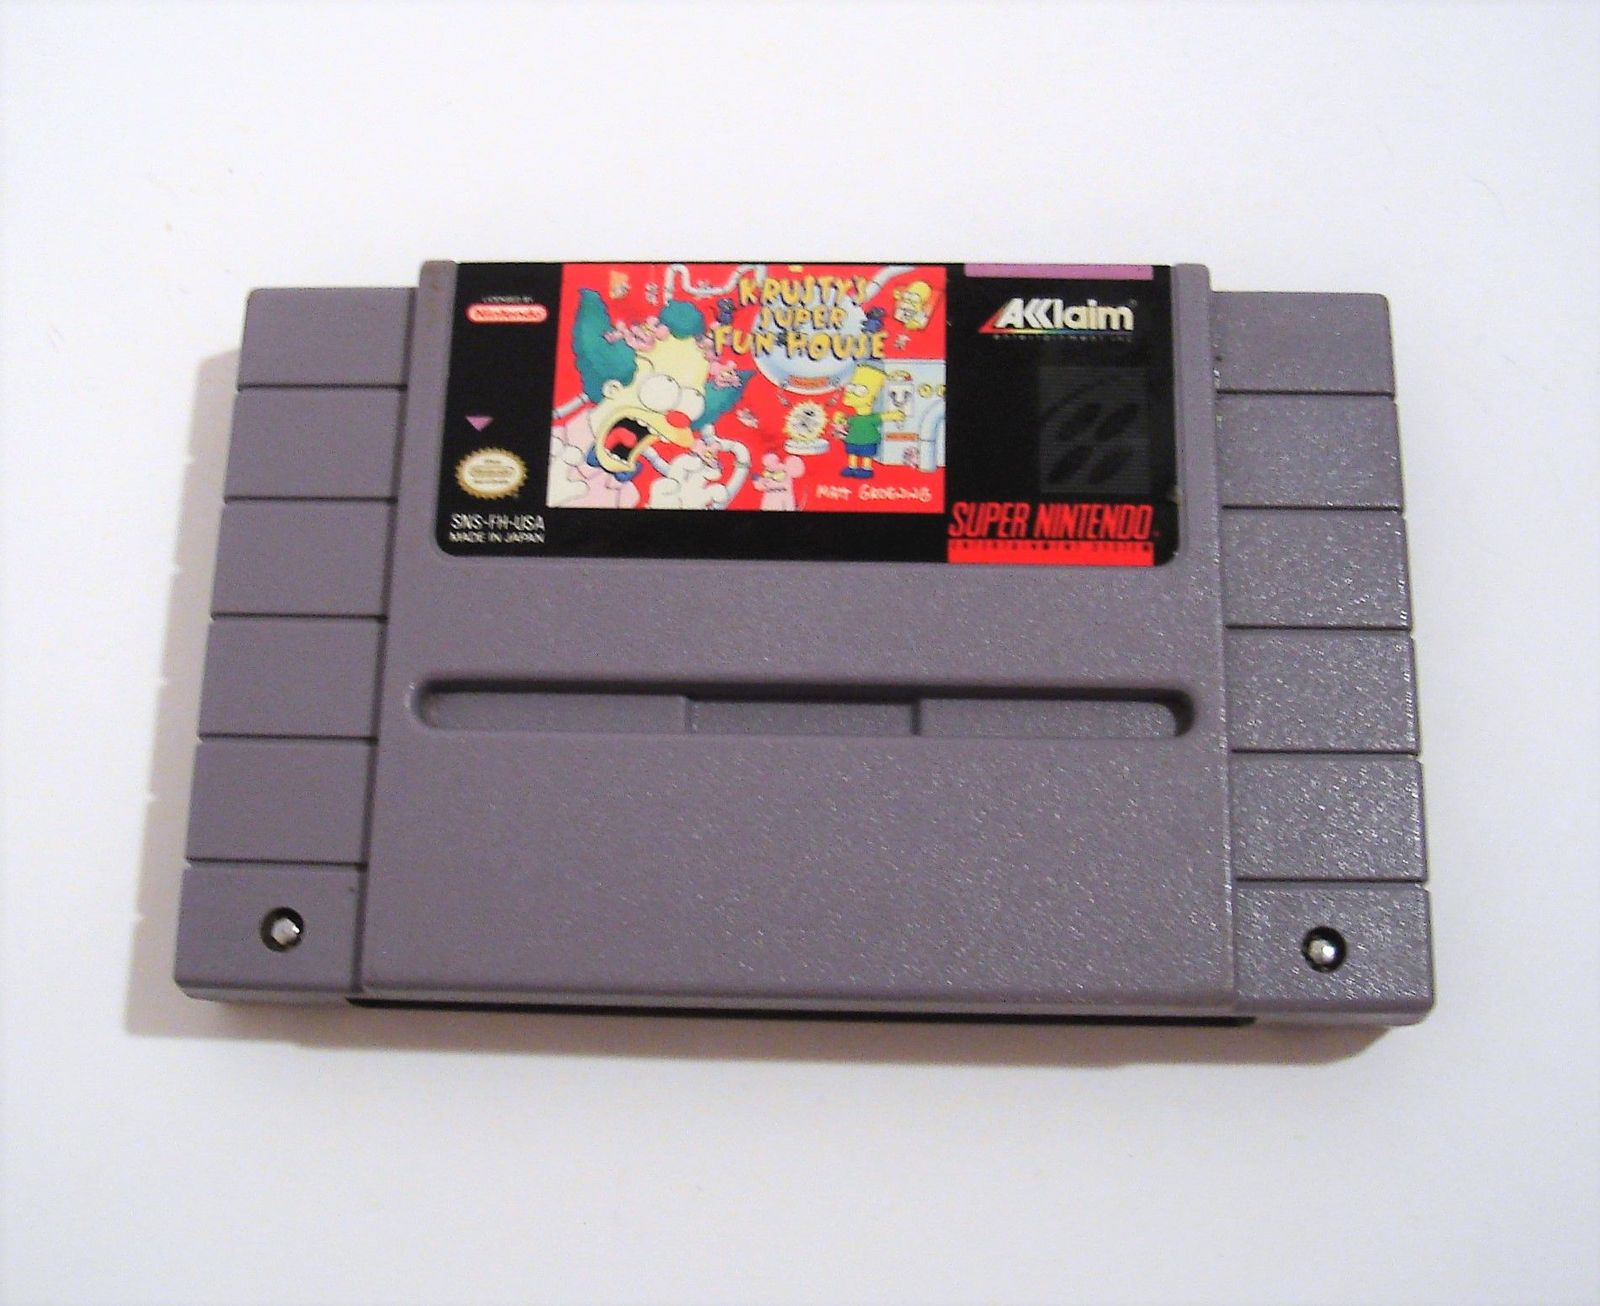 Primary image for Krusty's Super Fun House (Super Nintendo Entertainment System, 1992) SNES